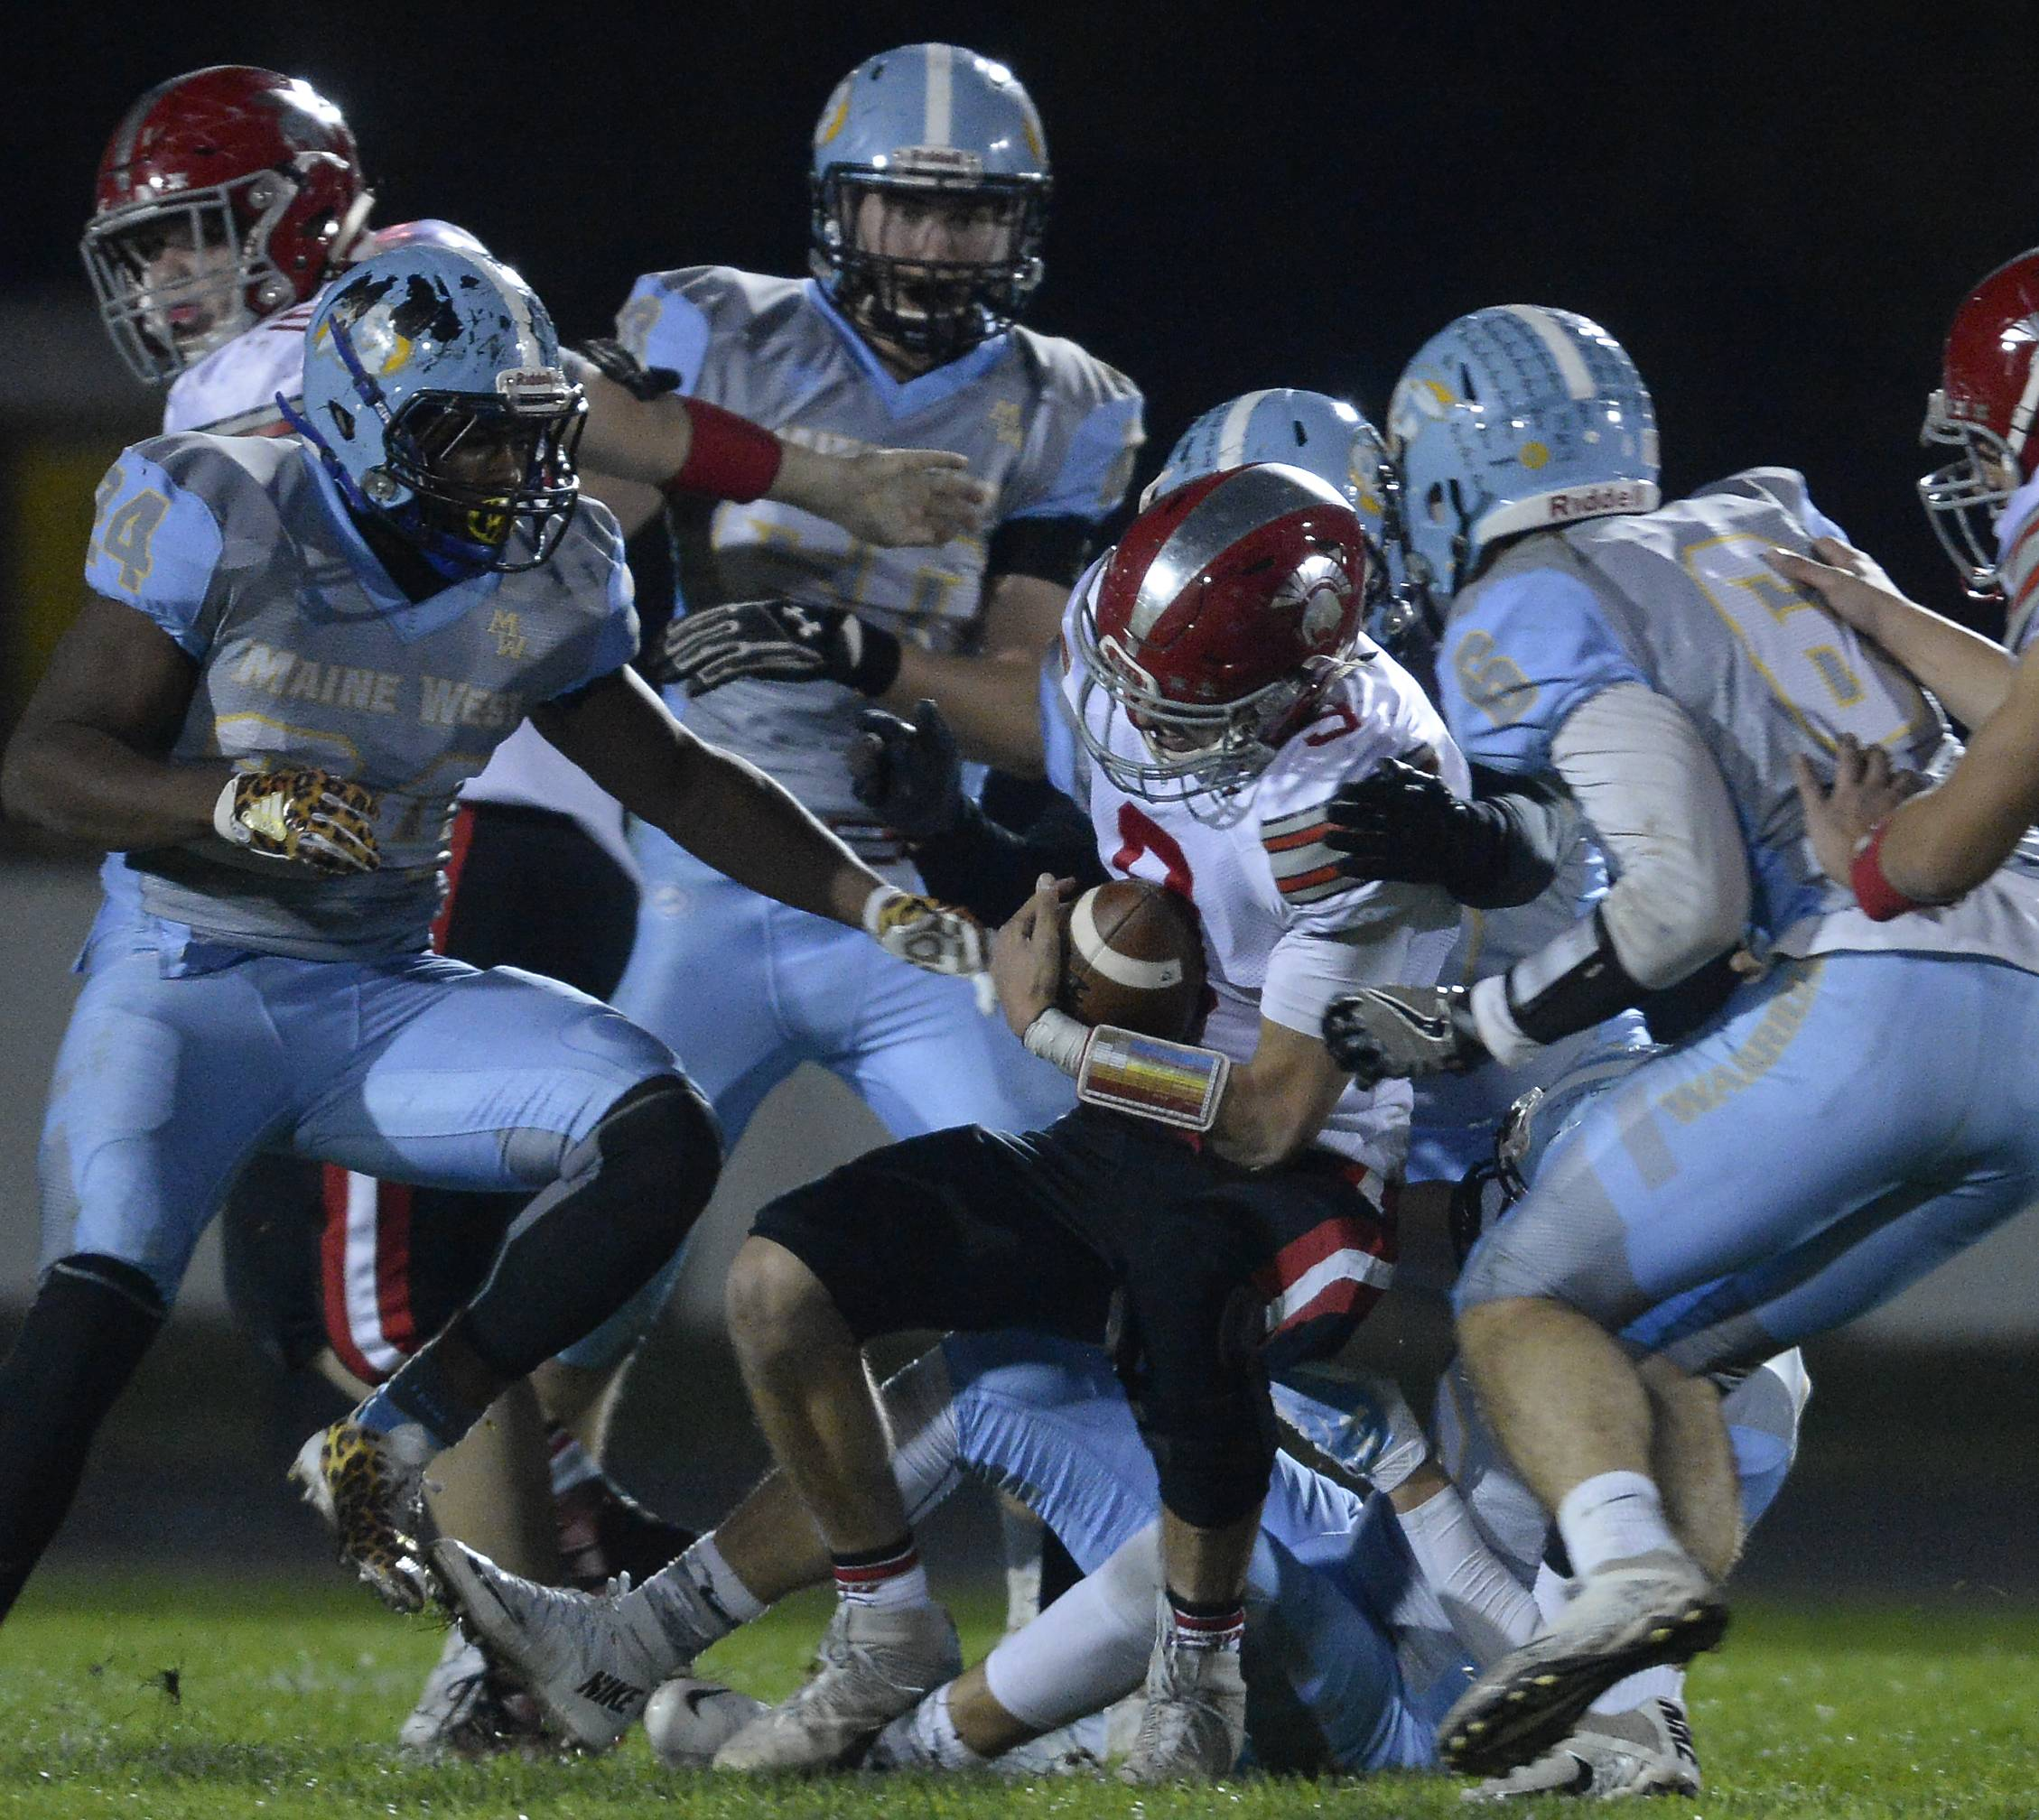 Maine West's defense brings down Deerfield's quarterback Jonah Silverglade in the first half of boys football at Maine West on Friday.